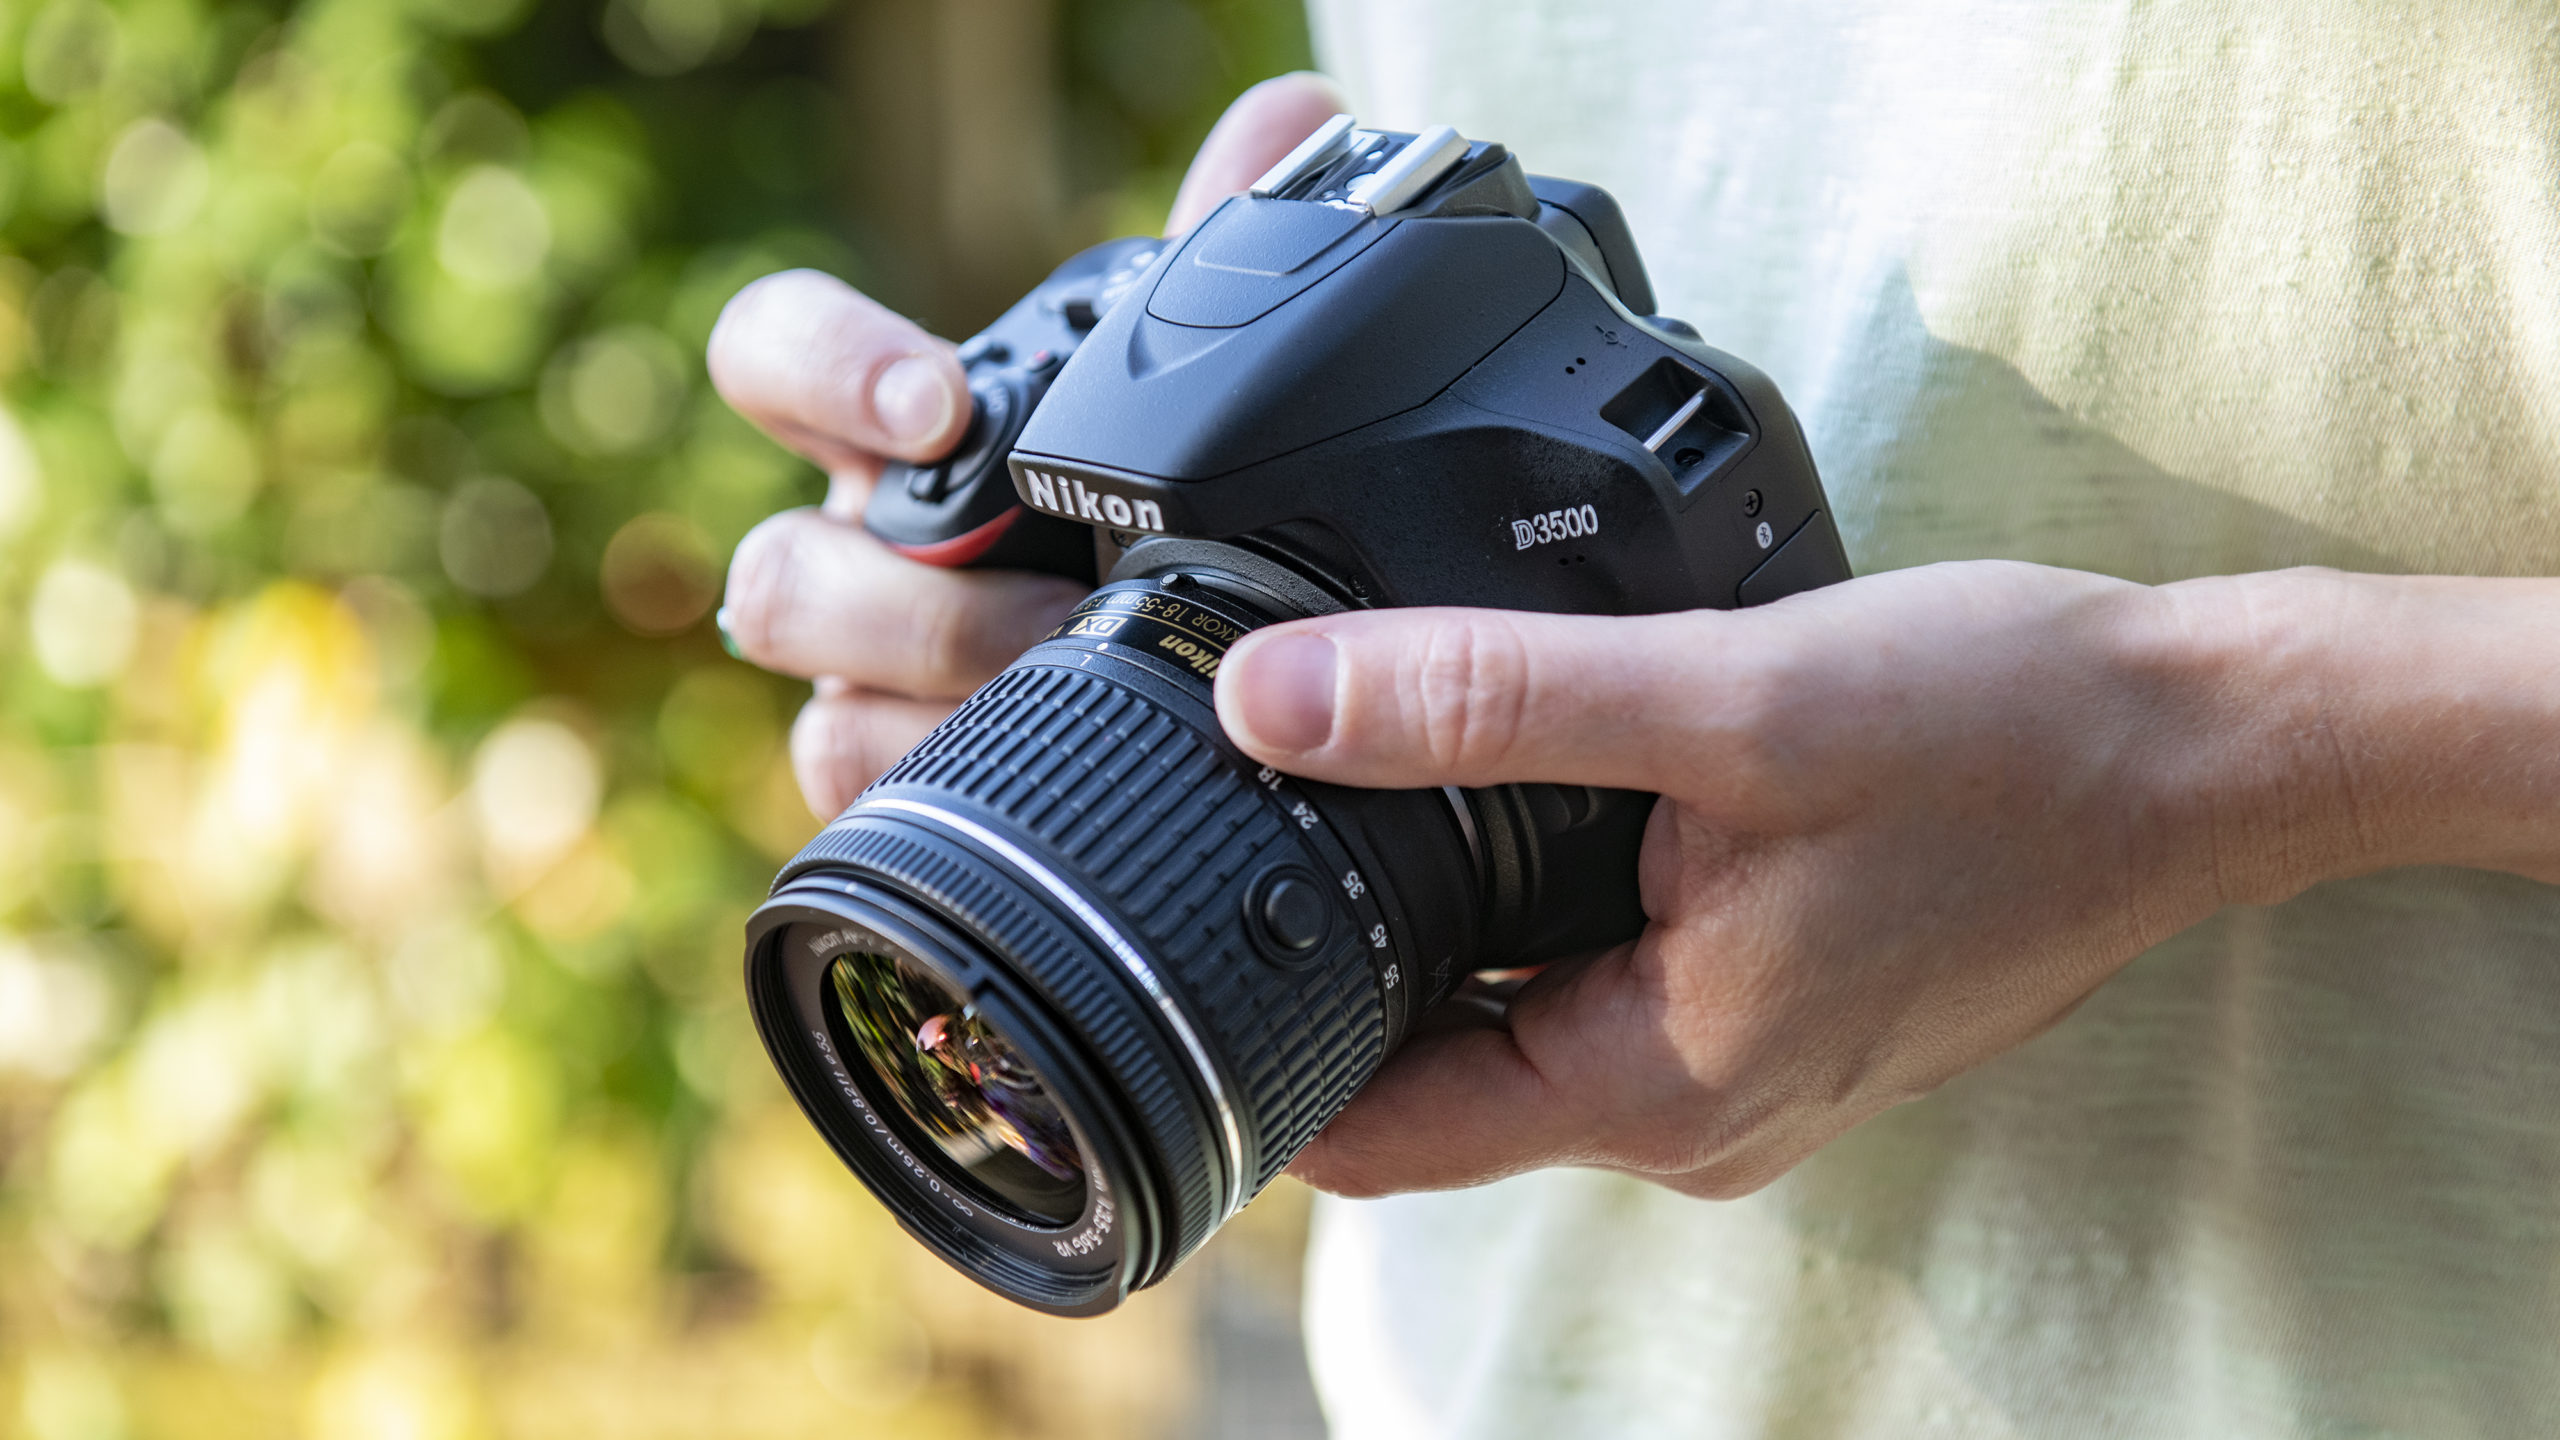 One of the greatest digital cameras in 2019 you should look for